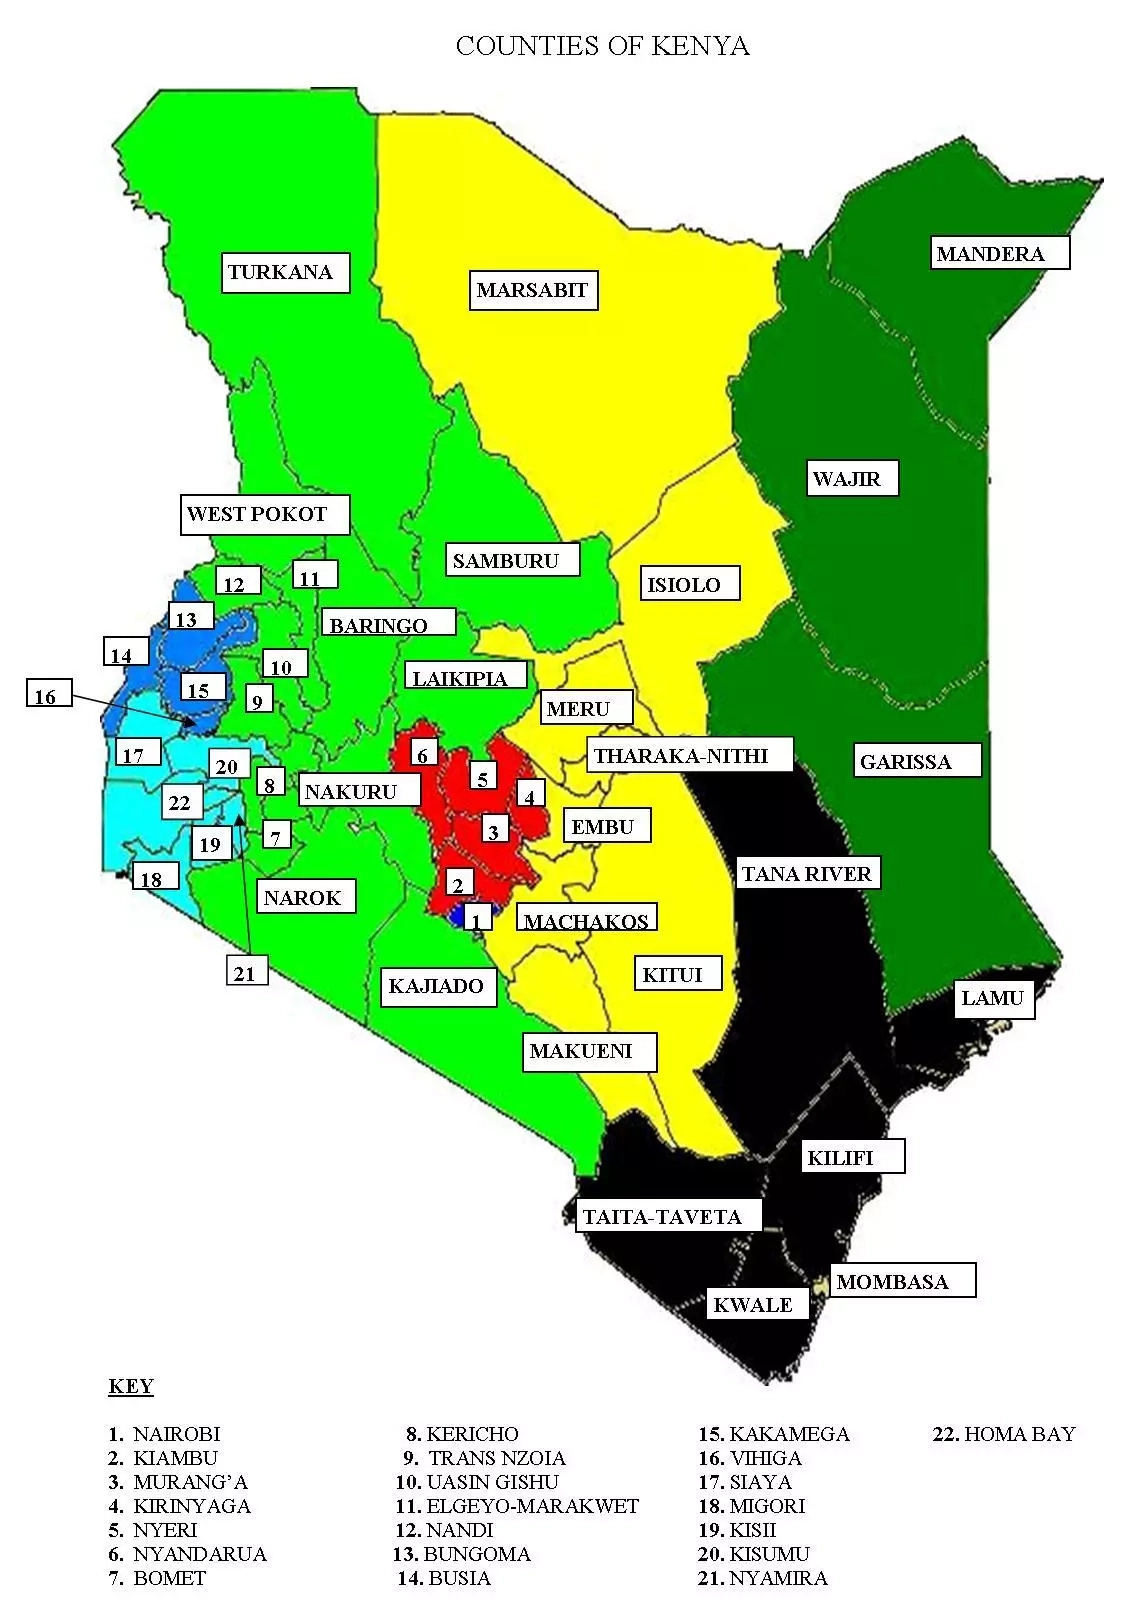 Counties in Kenya: Understanding the Devolved Government